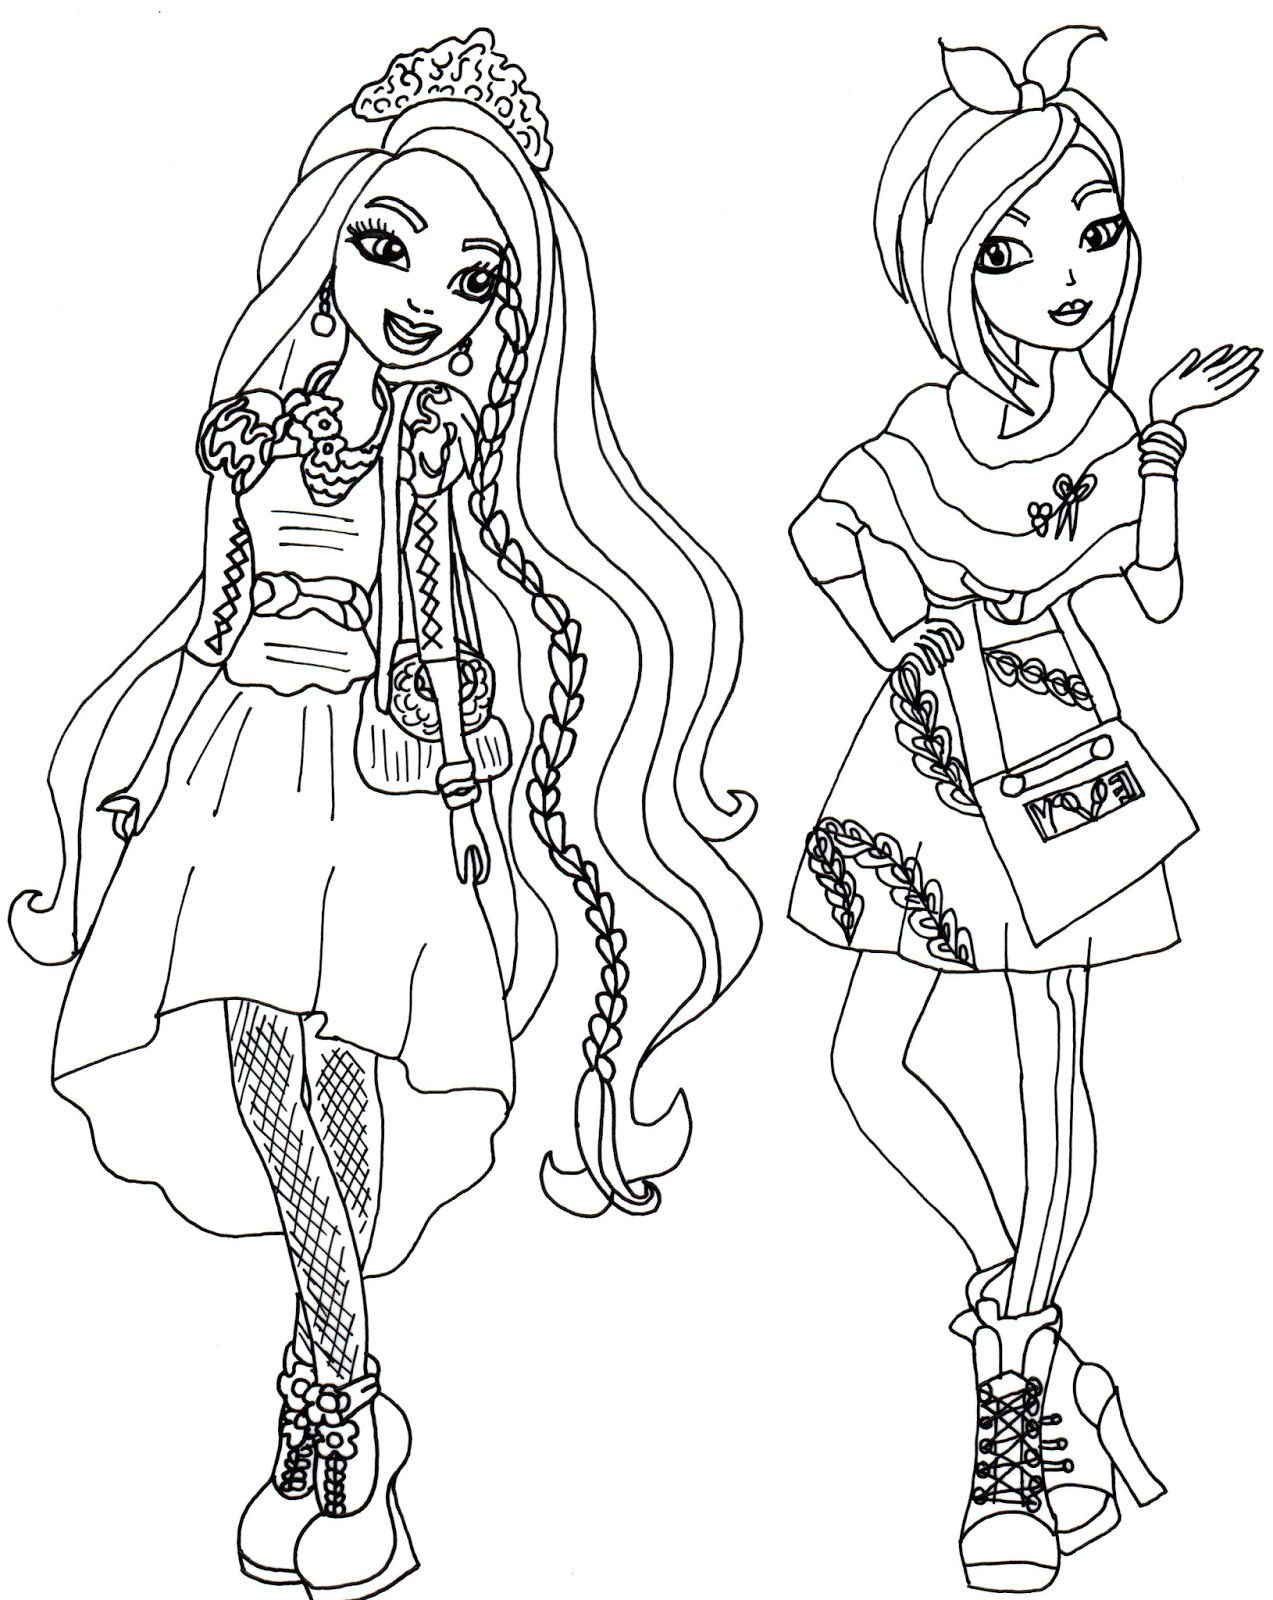 Colouring pages for ever after high - Coloring Book Ever After High Colouring In Ever After High Holly And Poppy O Hair